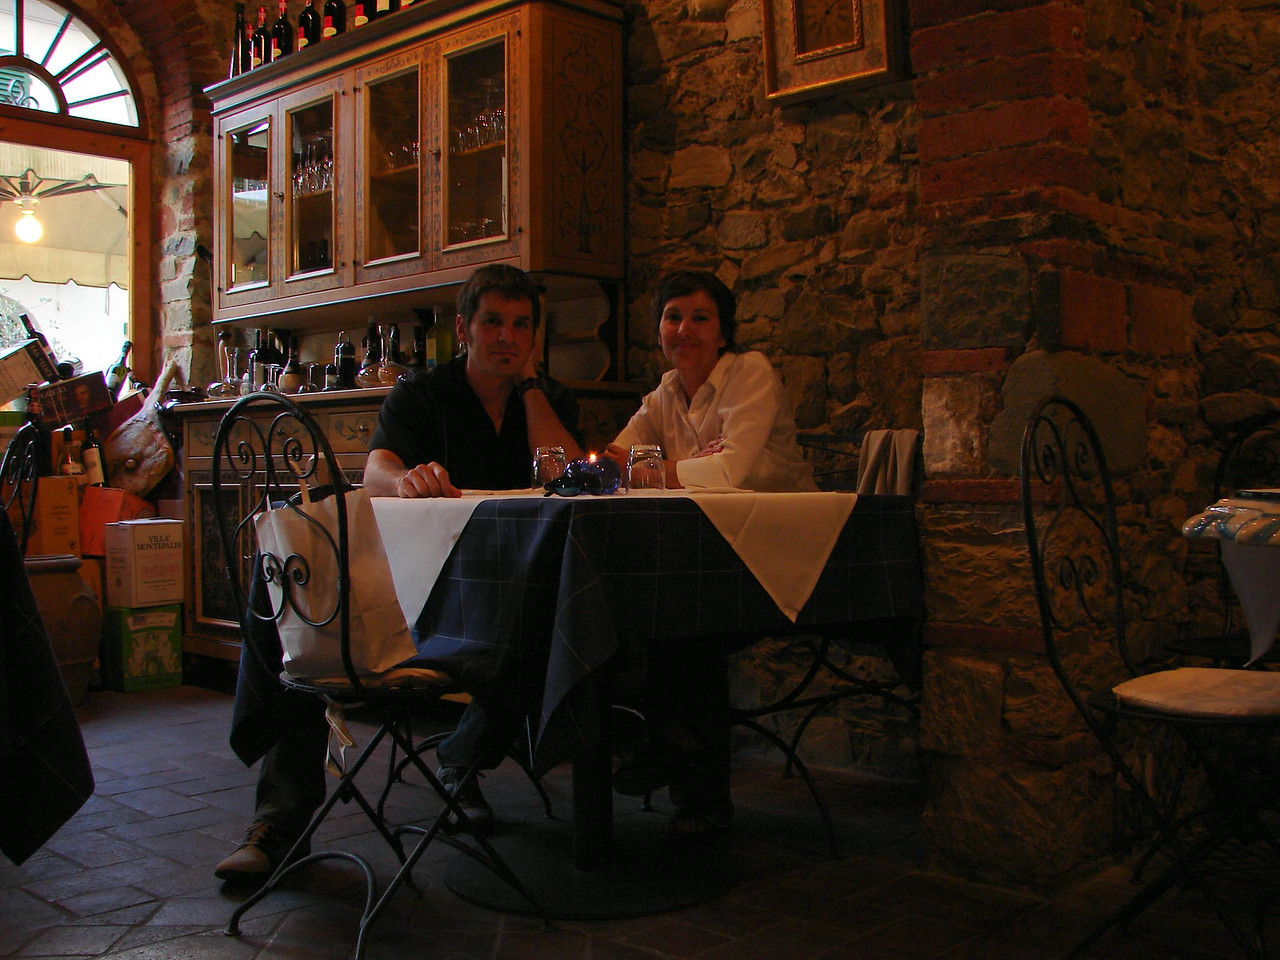 Our favorite restaurant on the whole trip. Trattoria di Borgo. Excellent food. The waitress, Valaria was a gem.